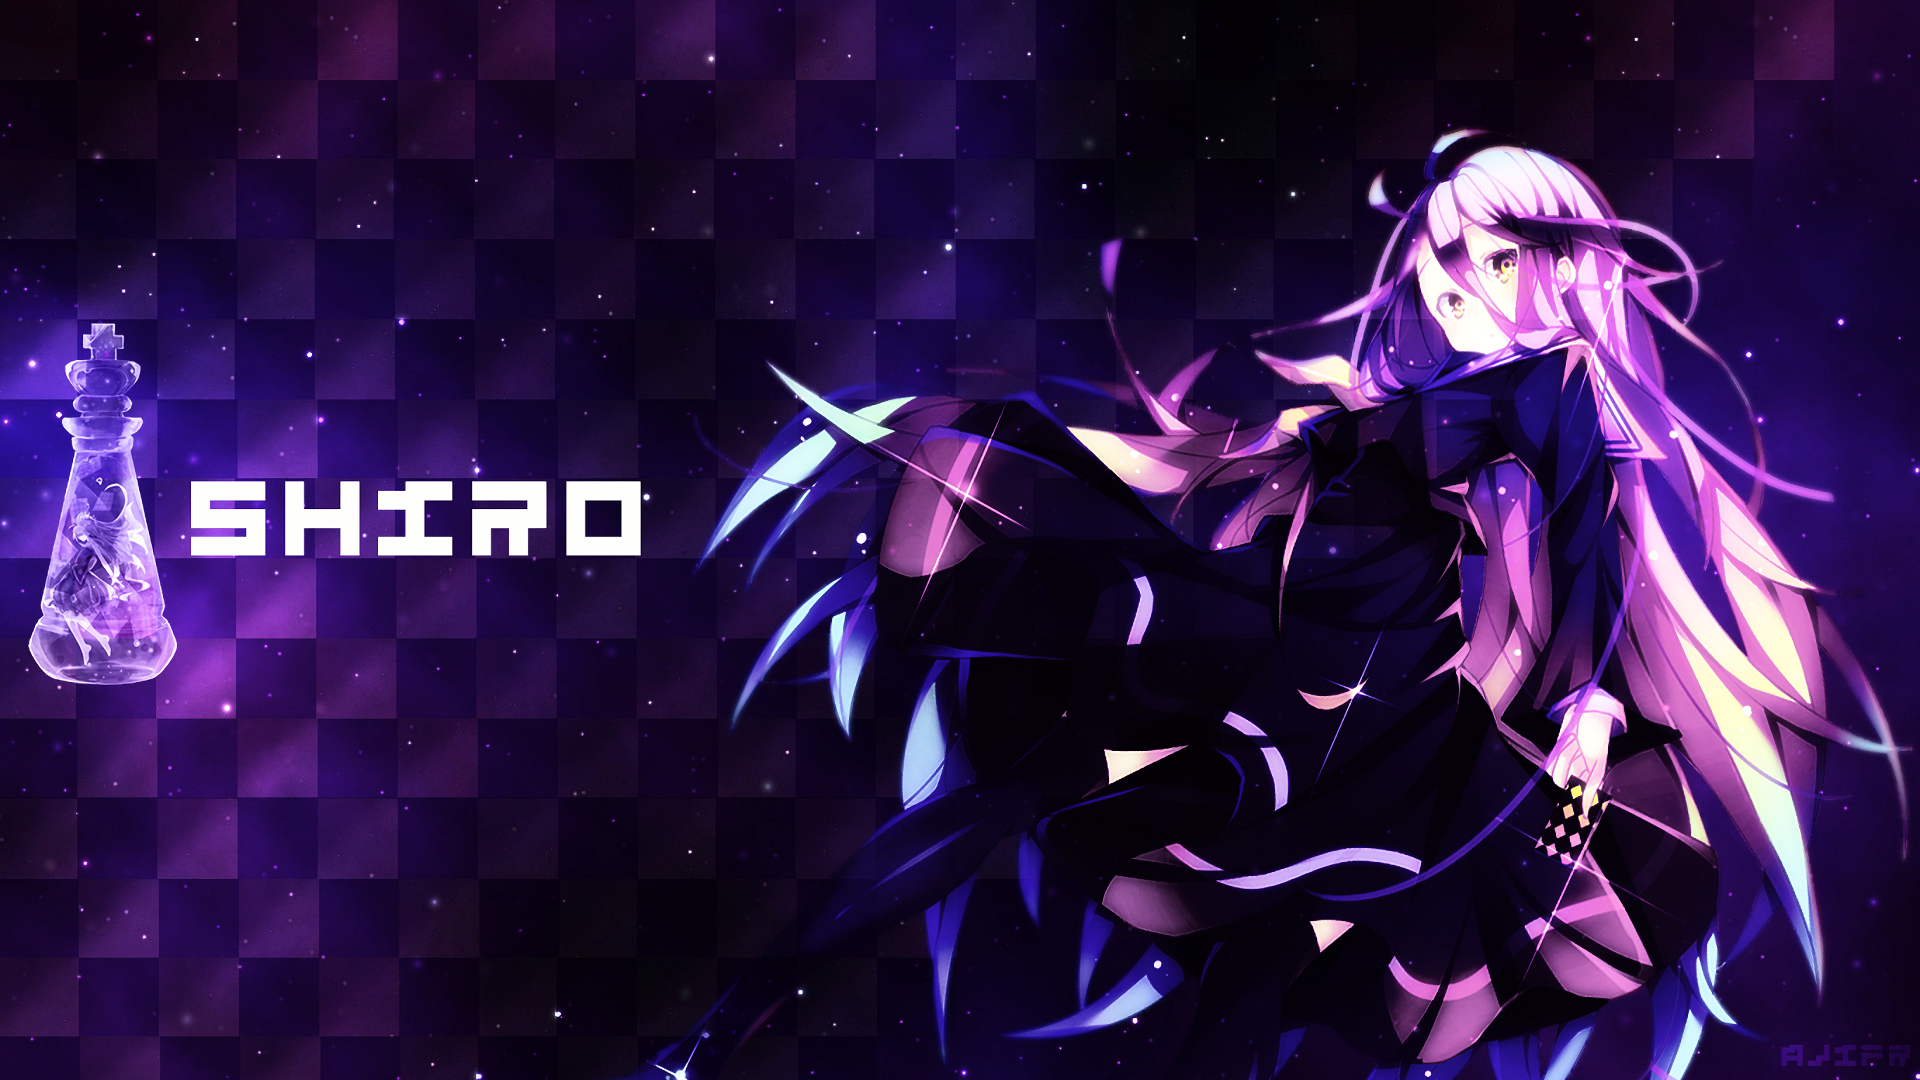 No Game No Life Hd Wallpaper Background Image 1920x1080 Id